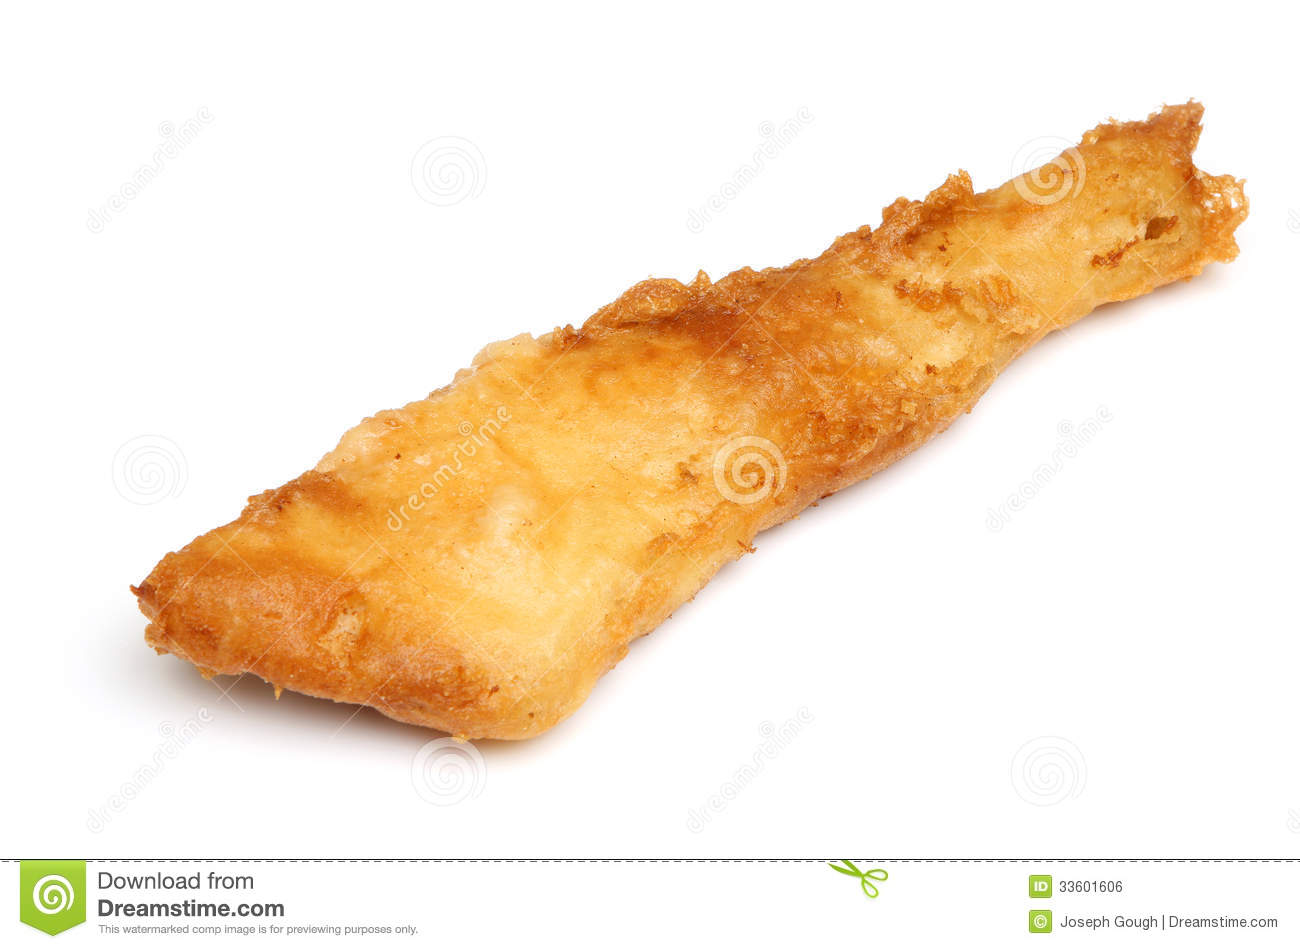 Fried Battered Cod Fish Fillet Royalty Free Stock Image - Image ...